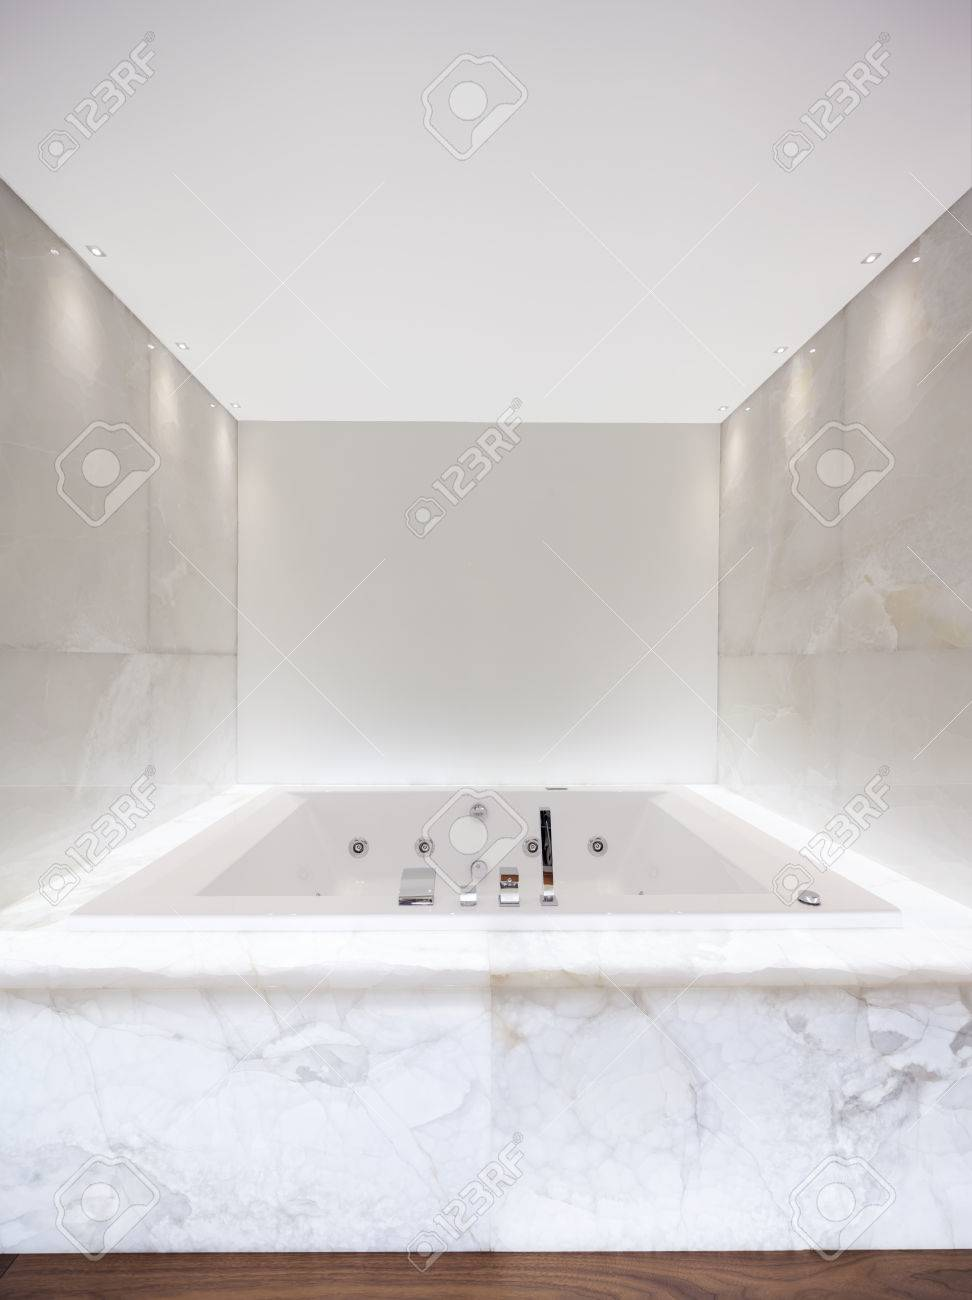 Large Bath Tub In The Bathroom Lit Marble Stock Photo, Picture And ...